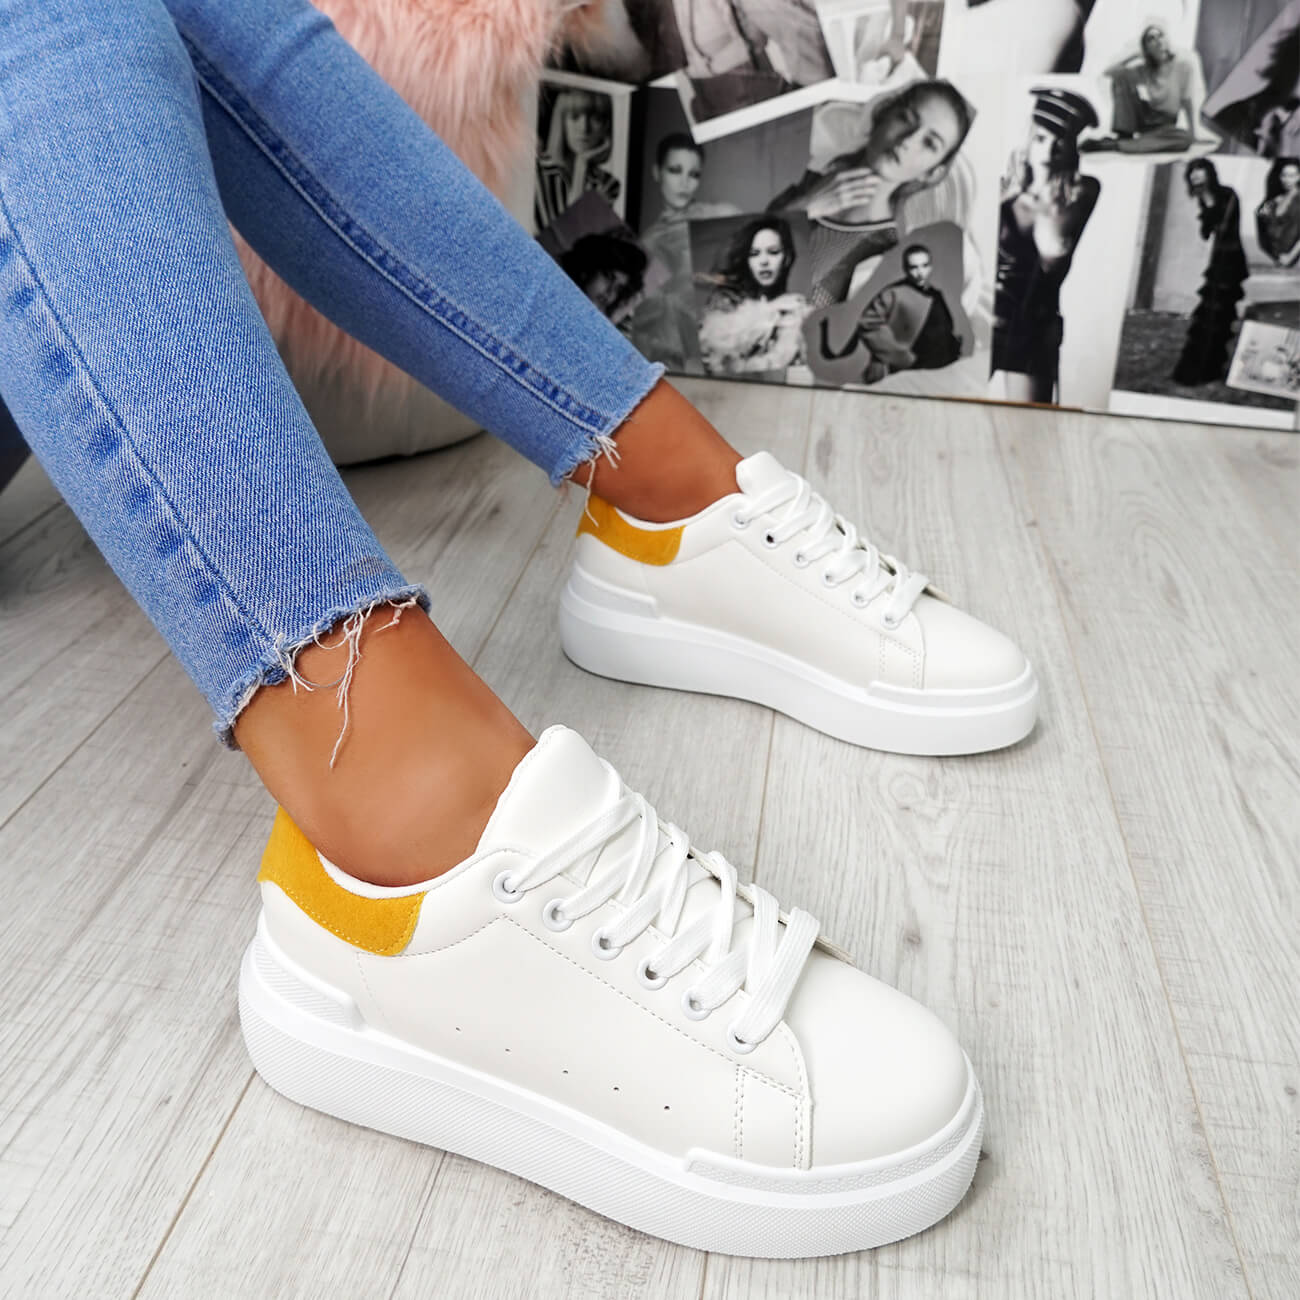 Ladies Low Ankle Sneaker Platform Flatform Womens Lace Trainers Shoes Yellow 3-8